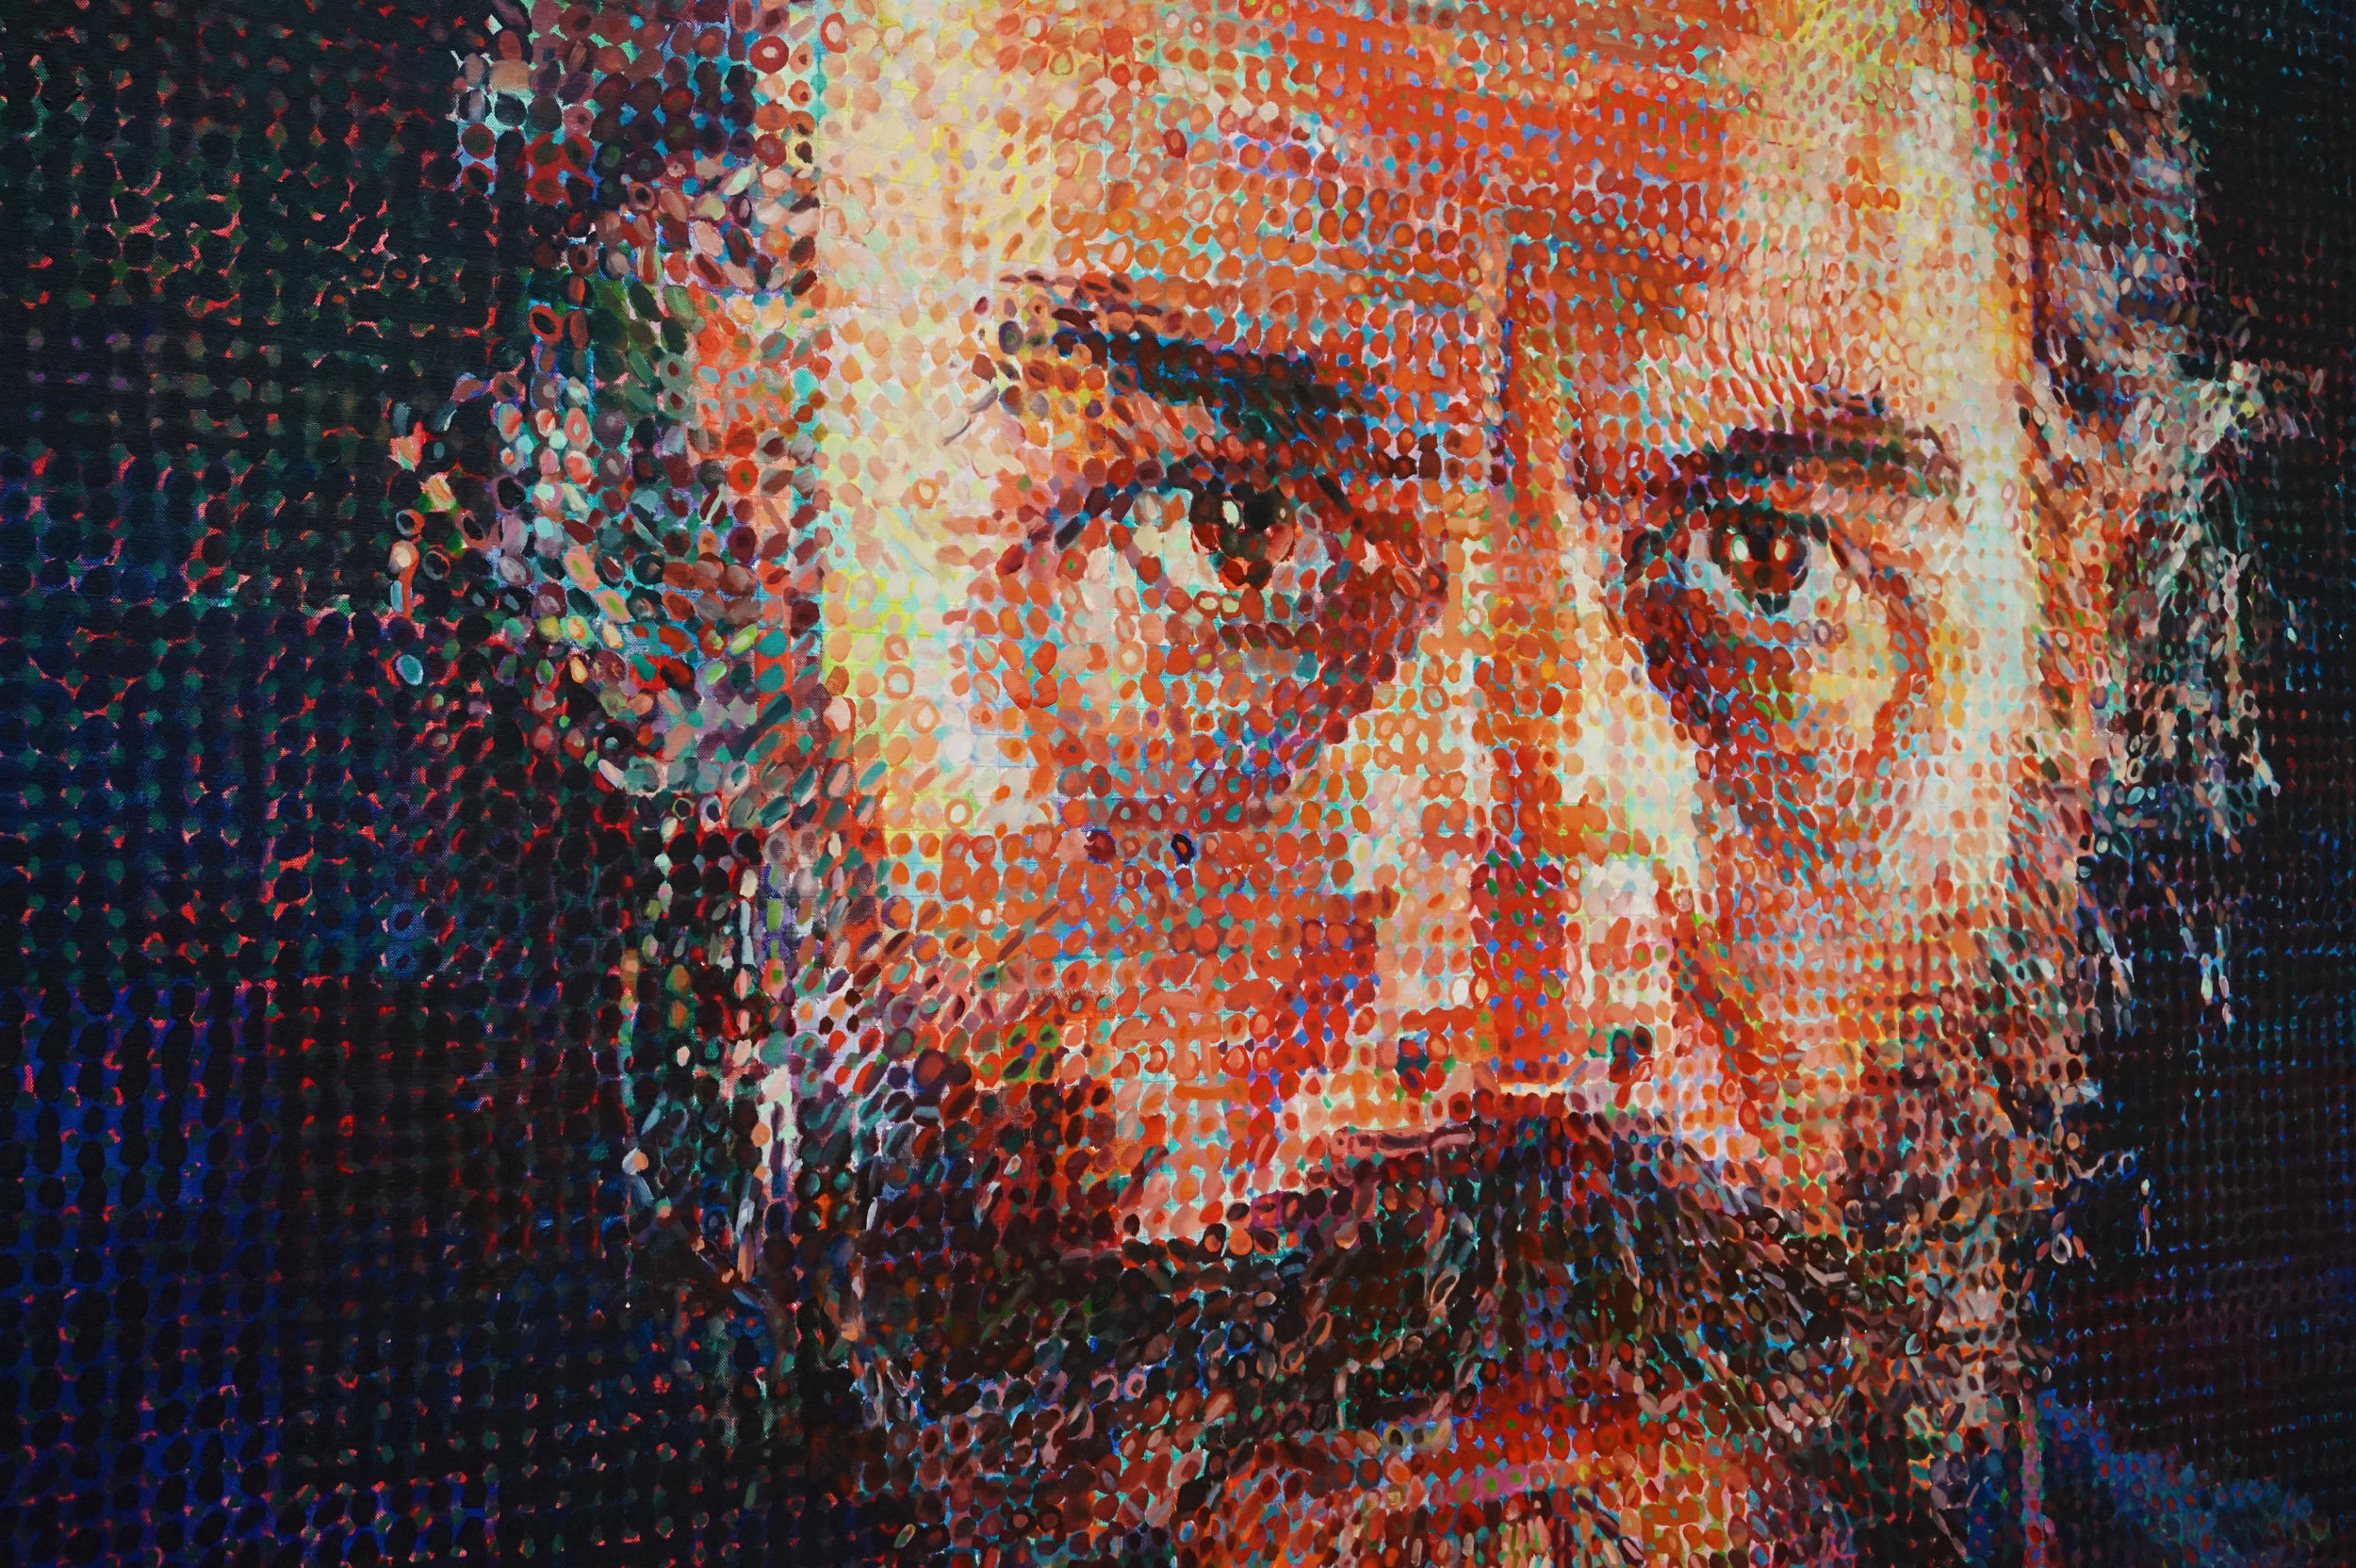 """""""Self-Portrait"""" by Chuck Close...I remember my fourth-grade teacher making us draw replicas of it, so it was cool to see it in person"""